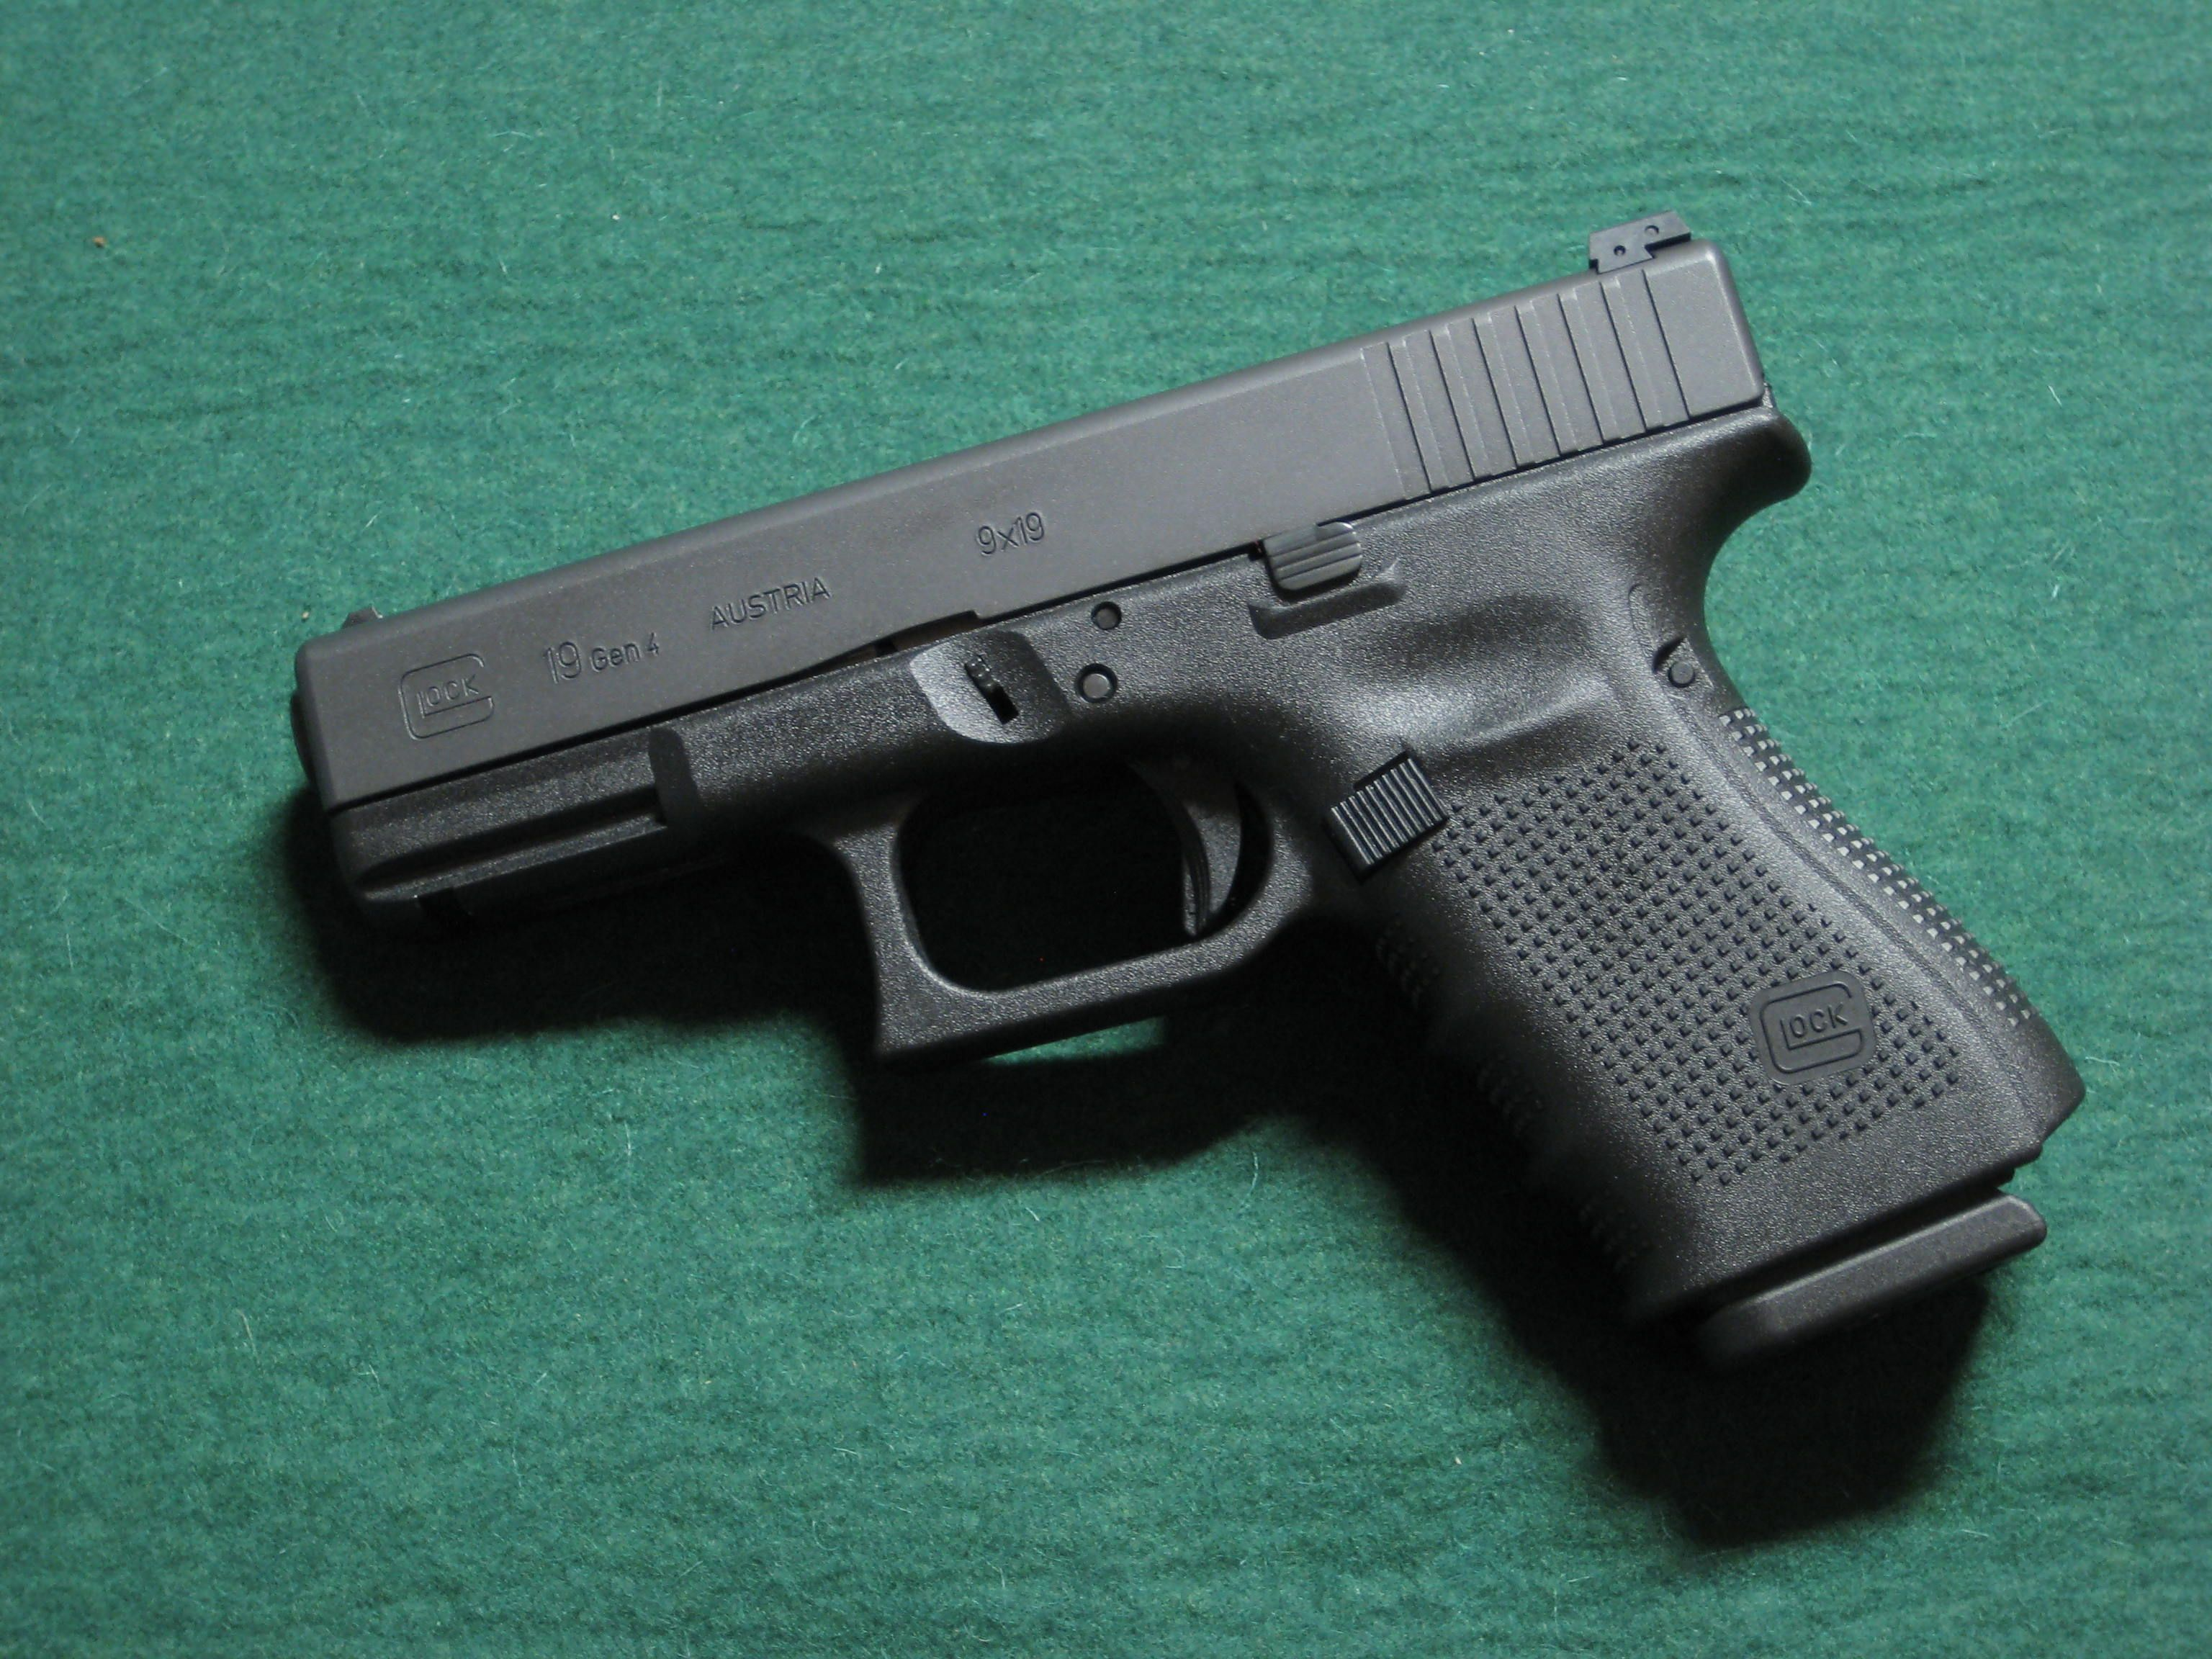 Glock 19 Gen 4 - I own it, carry it and love it. The